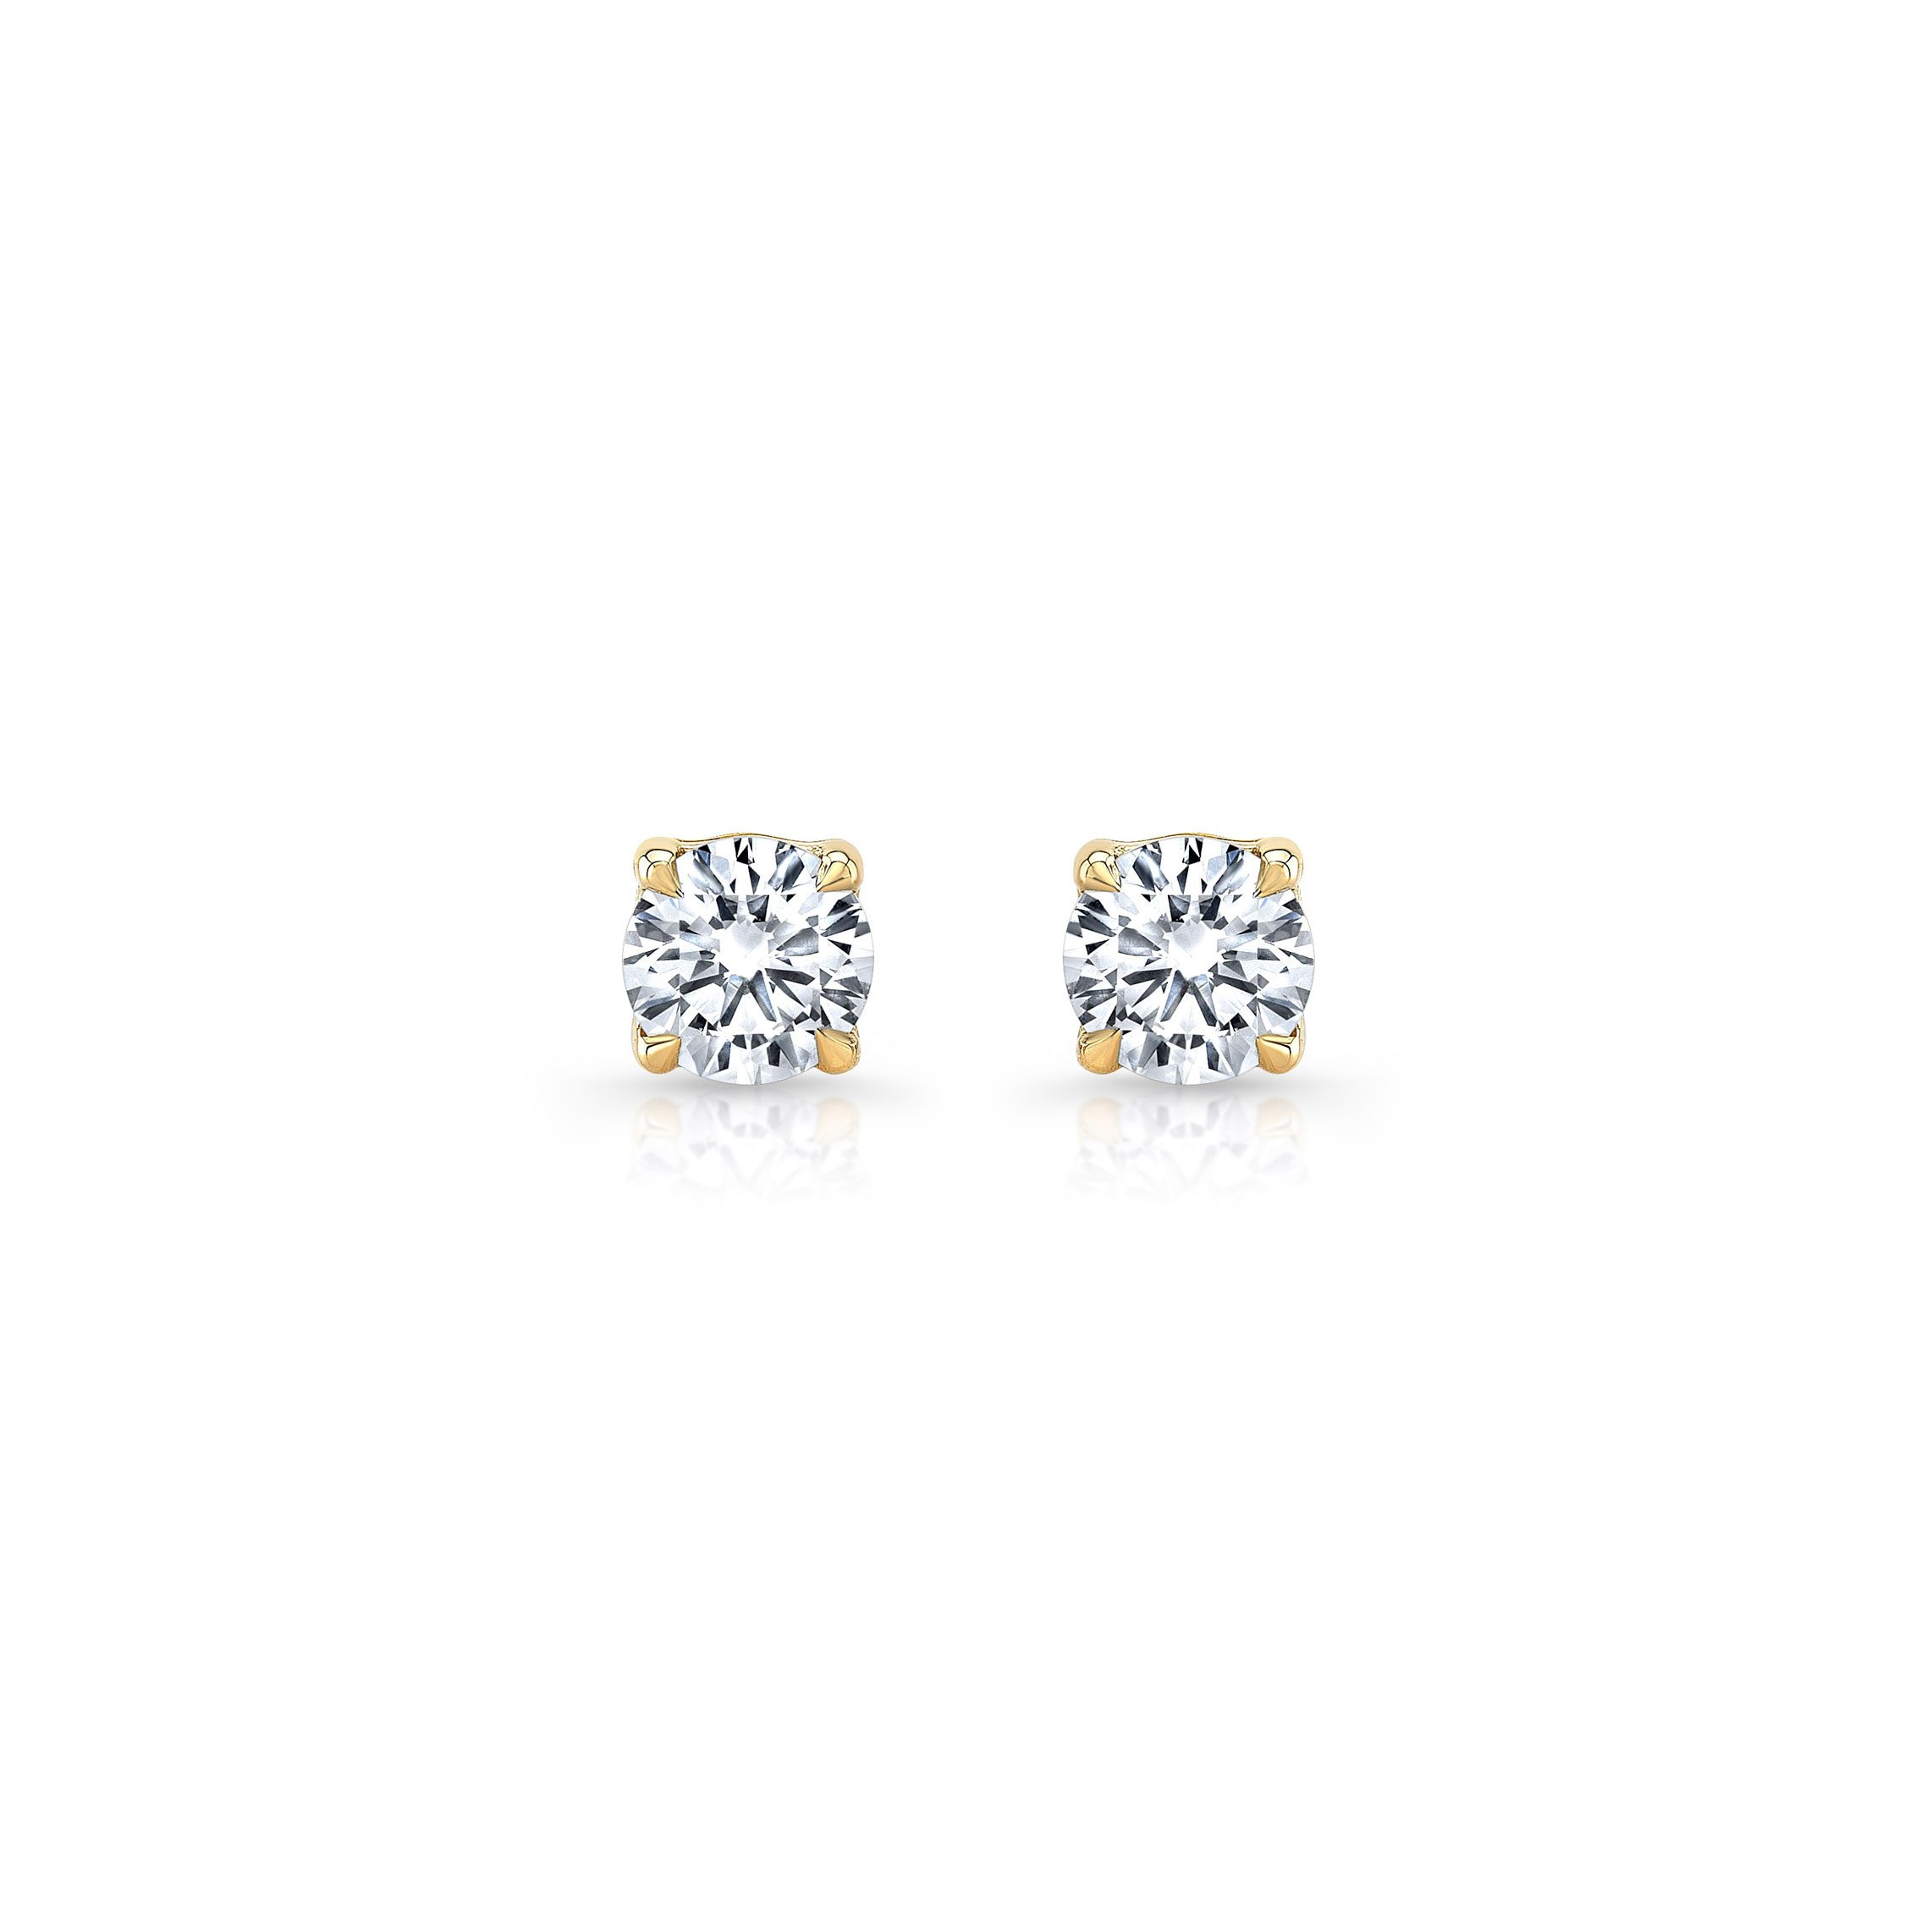 La Petite Round Brilliant Diamond Stud Earrings in 18k Yellow Gold Front View by Oui by Jean Dousset